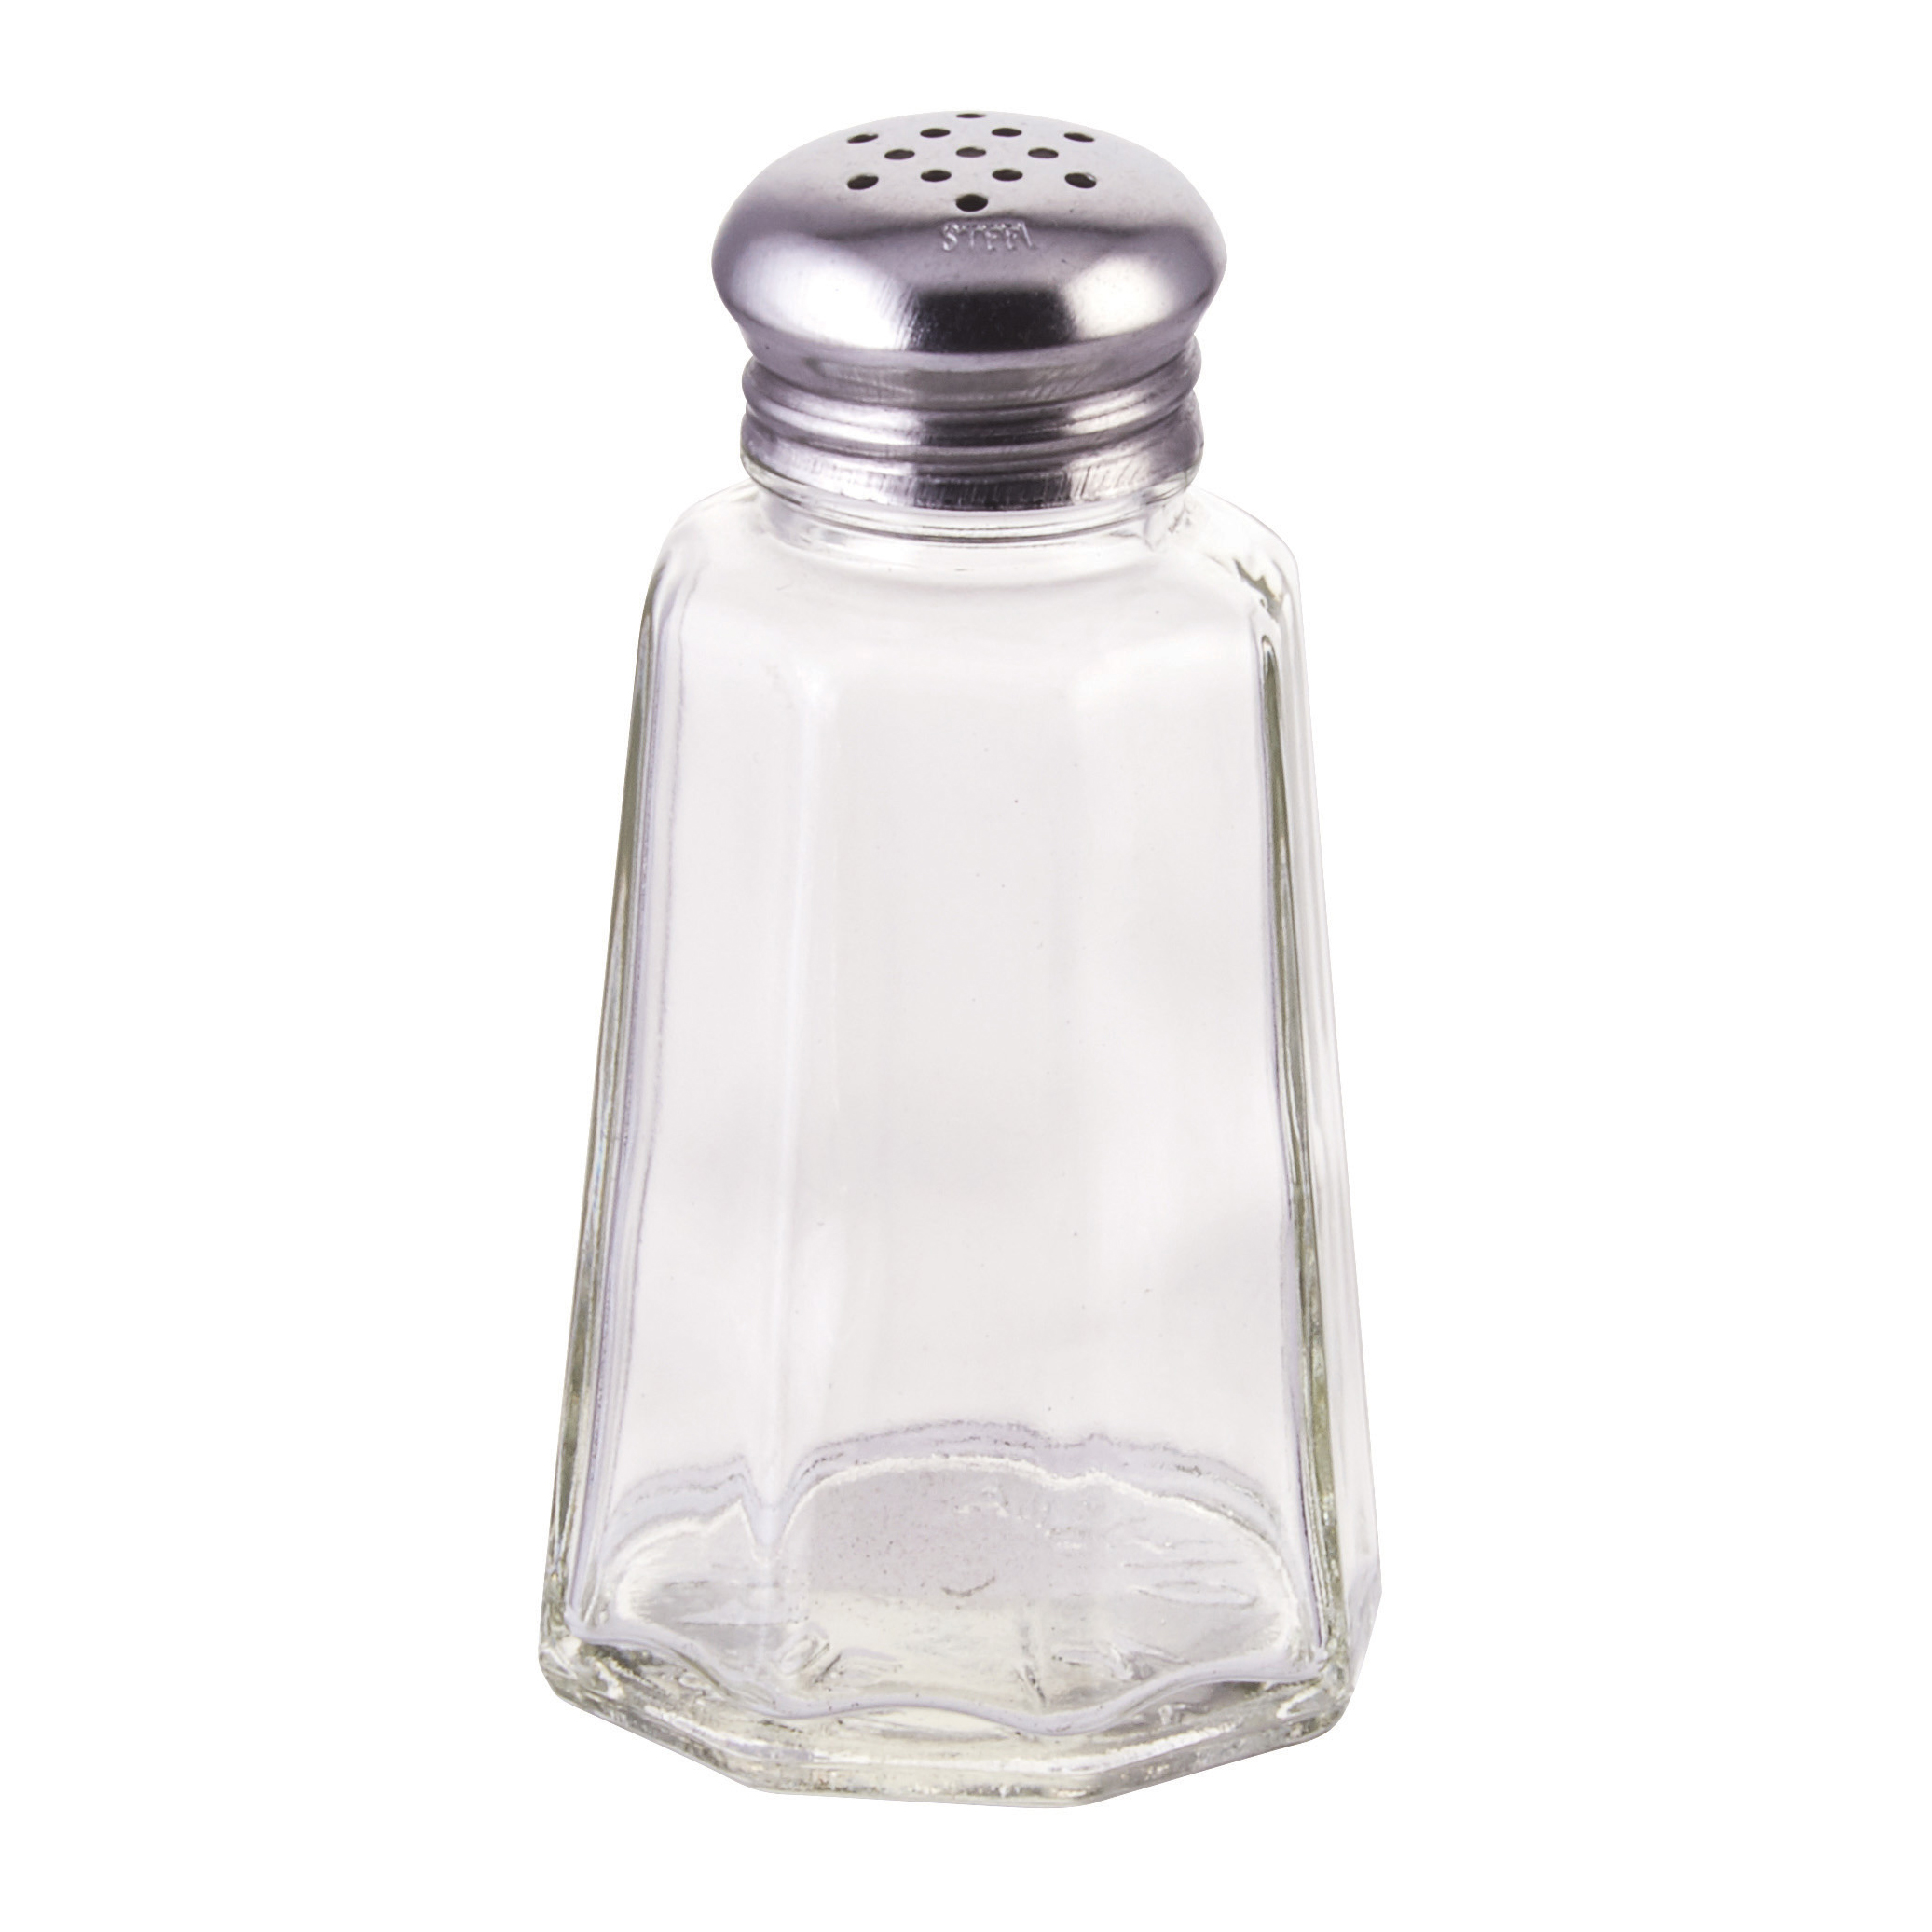 Winco G-106 salt / pepper shaker